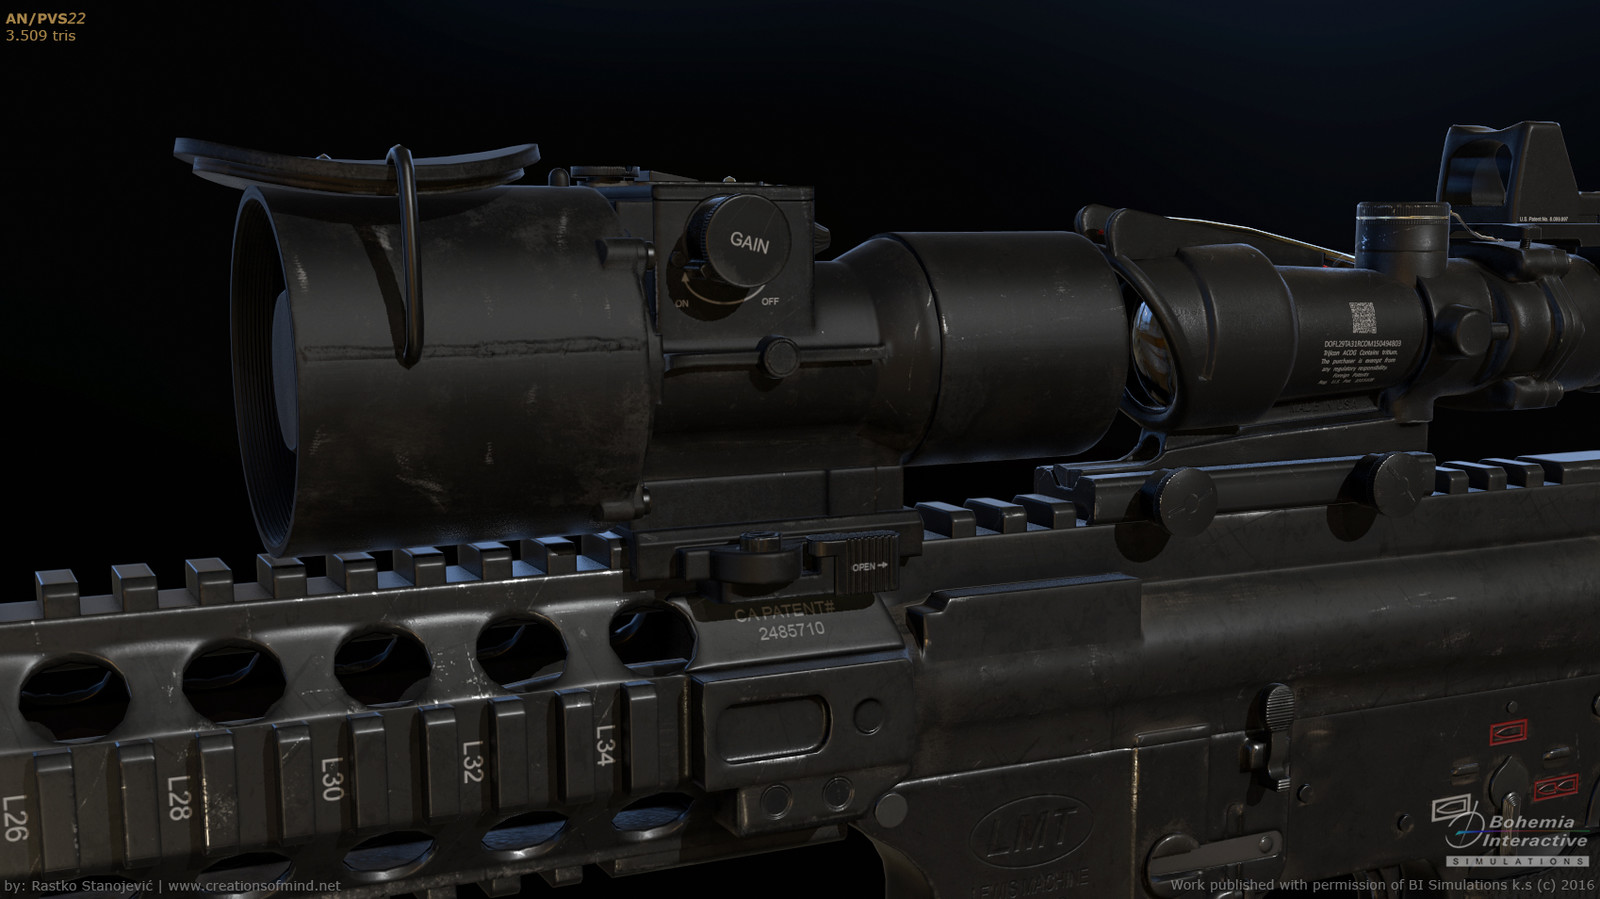 AN/PVS-22, shown on rifle | real time render | 3.509 tris